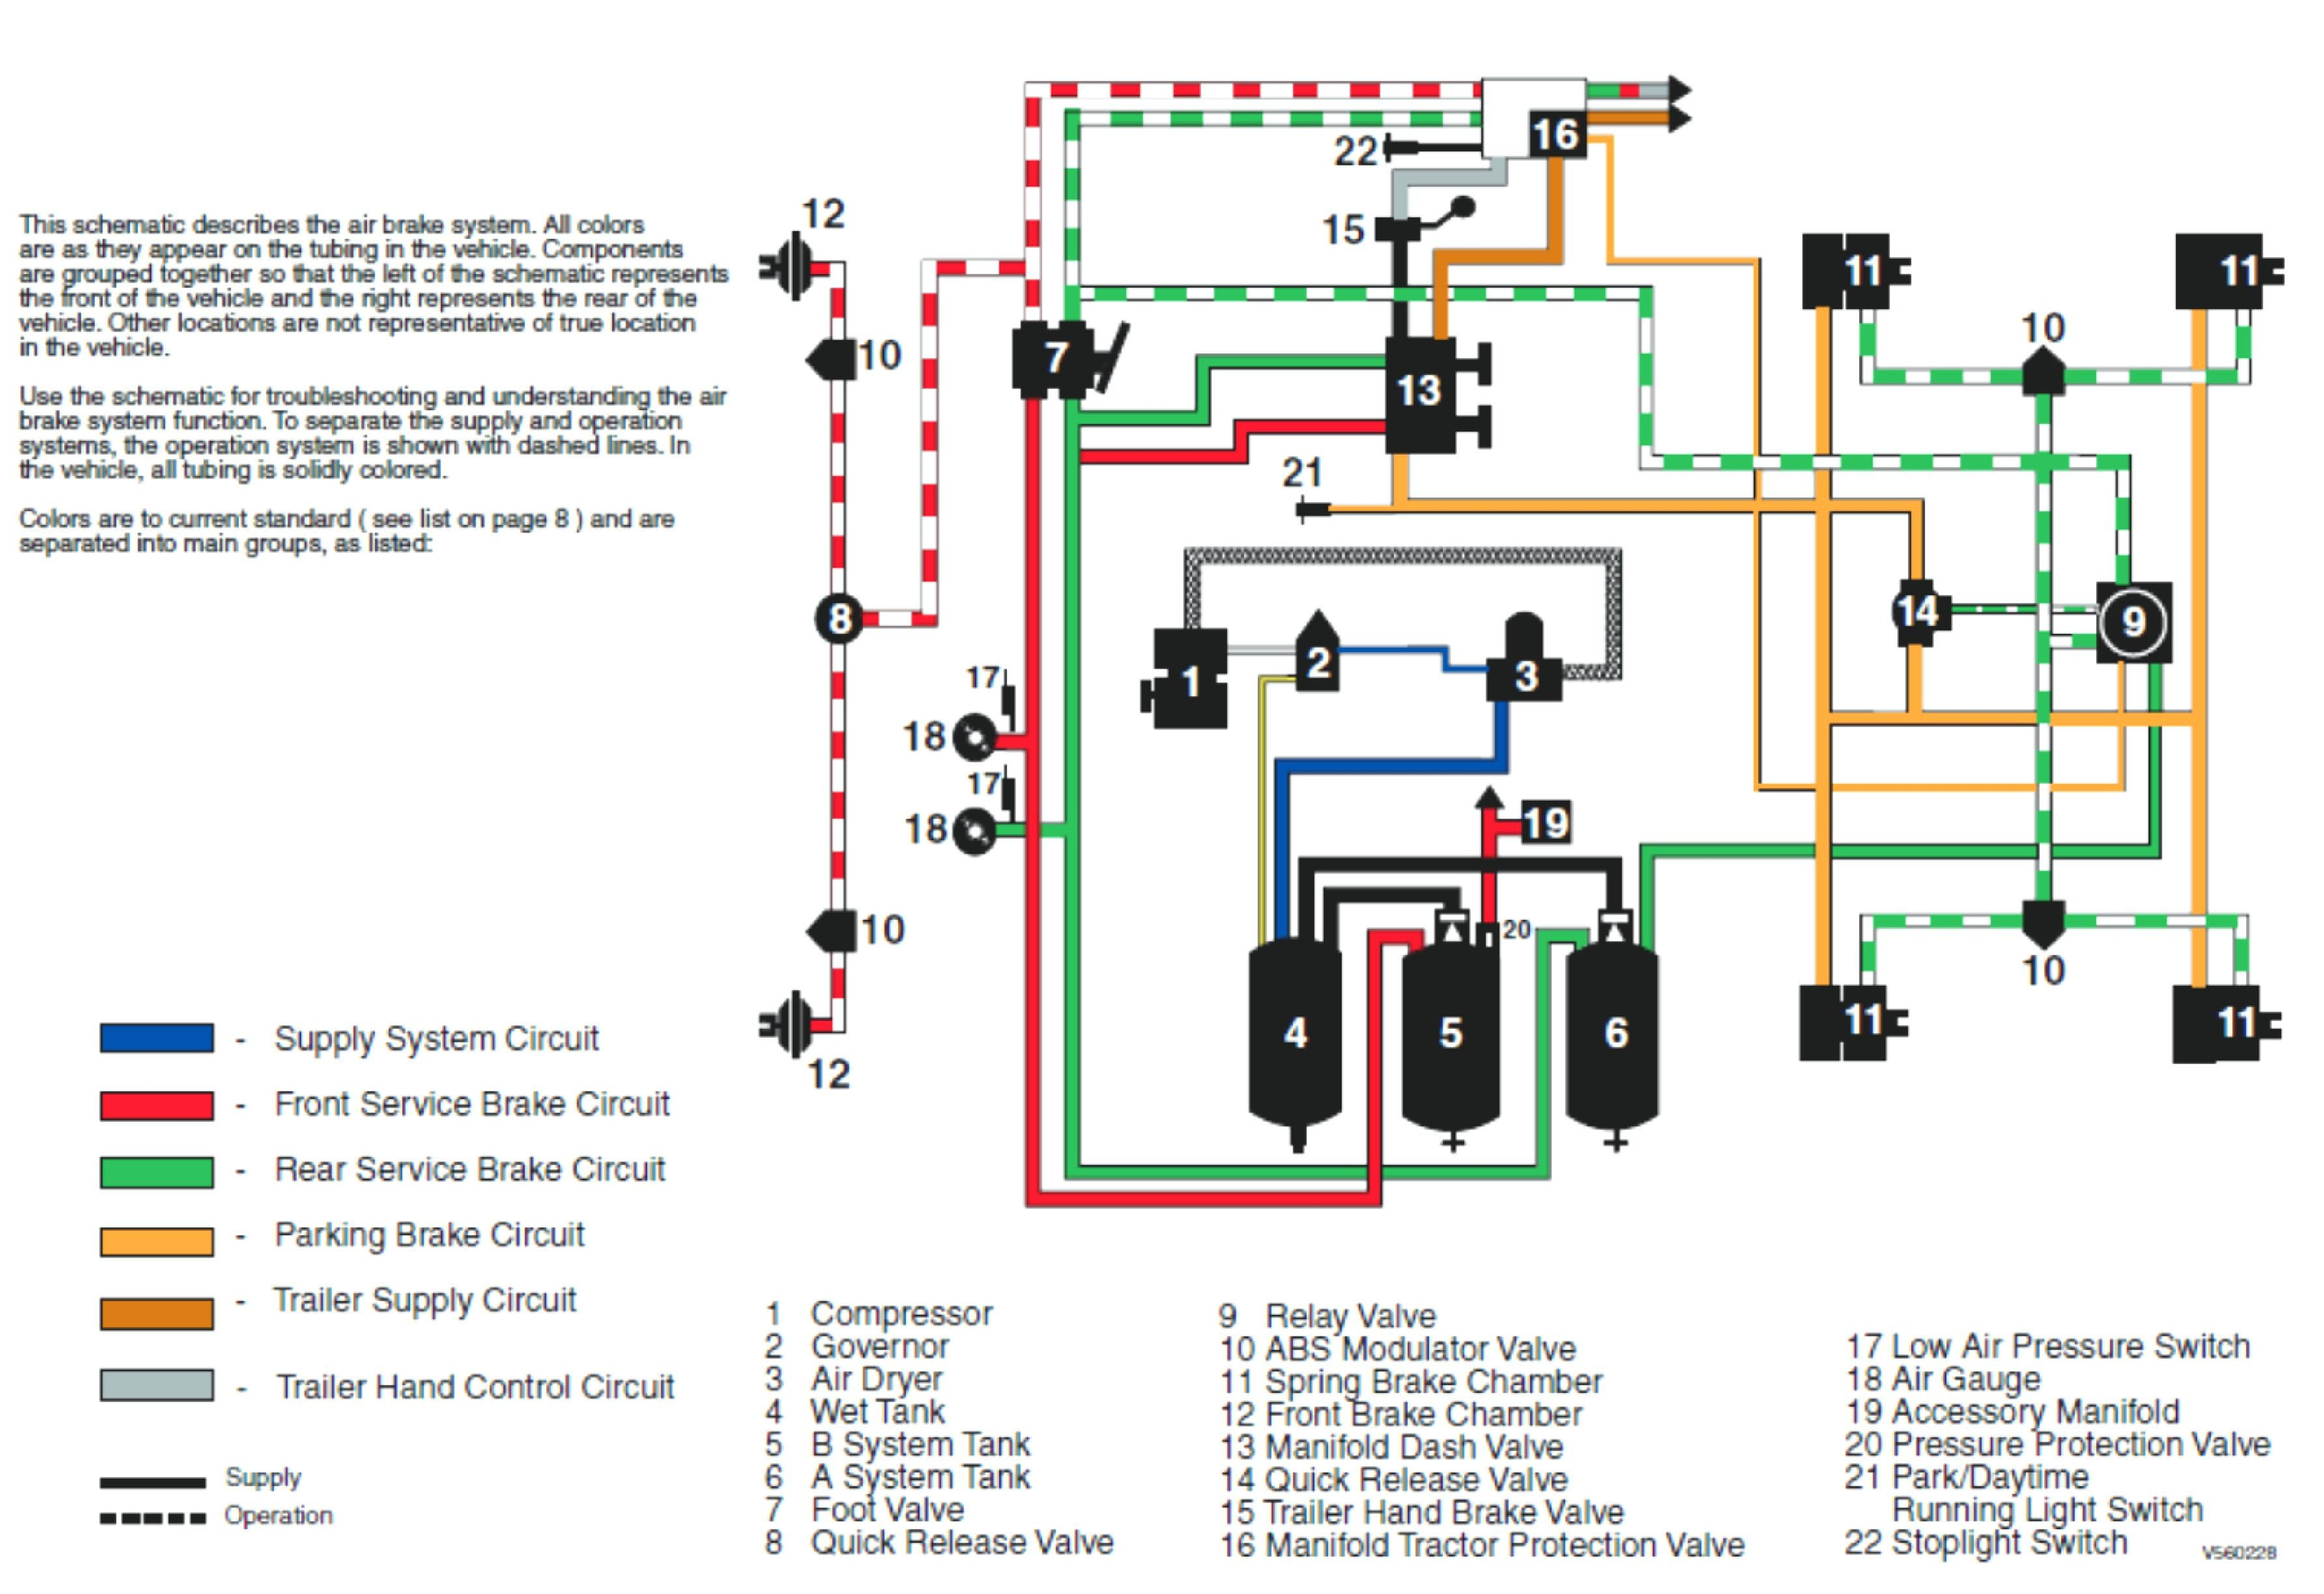 Tractor Trailer Wiring Diagram Travel Trailer Battery Hookup Diagram Tractor Air Brake System Of Tractor Trailer Wiring Diagram